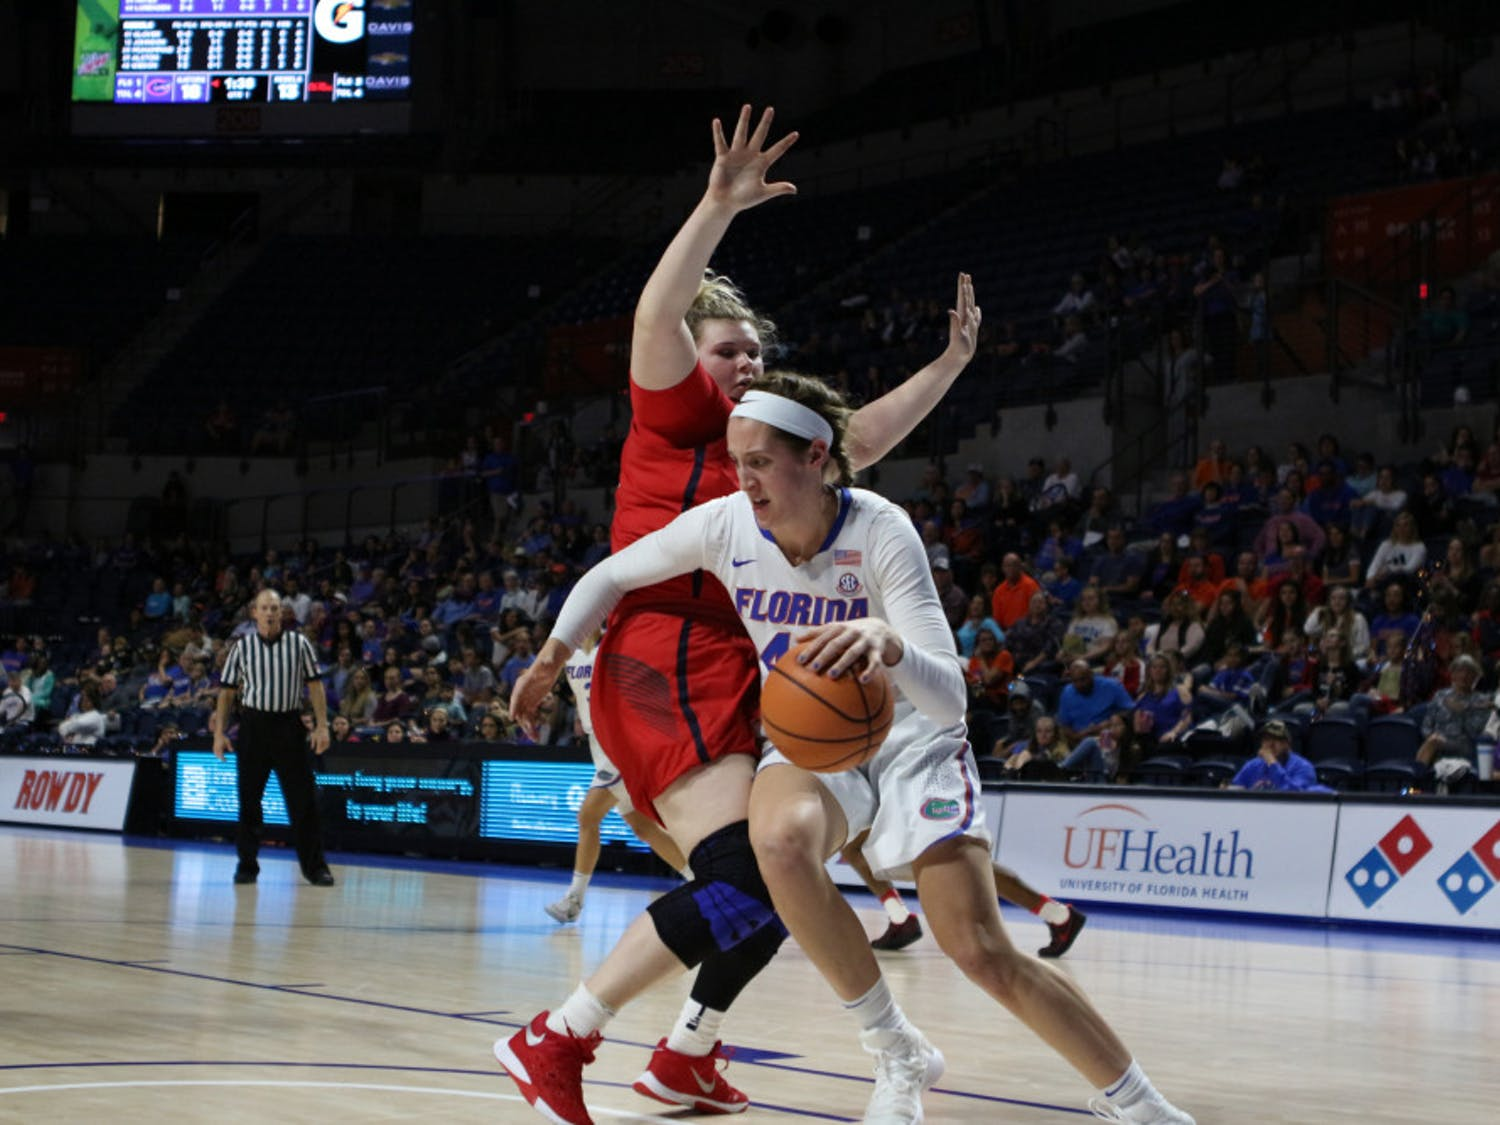 Haley Lorenzen had 7 points, 7 rebounds and 2 blocks in the fourth quarter of a 61-60 win against Ole Miss at the O'Connell Center on Sunday.